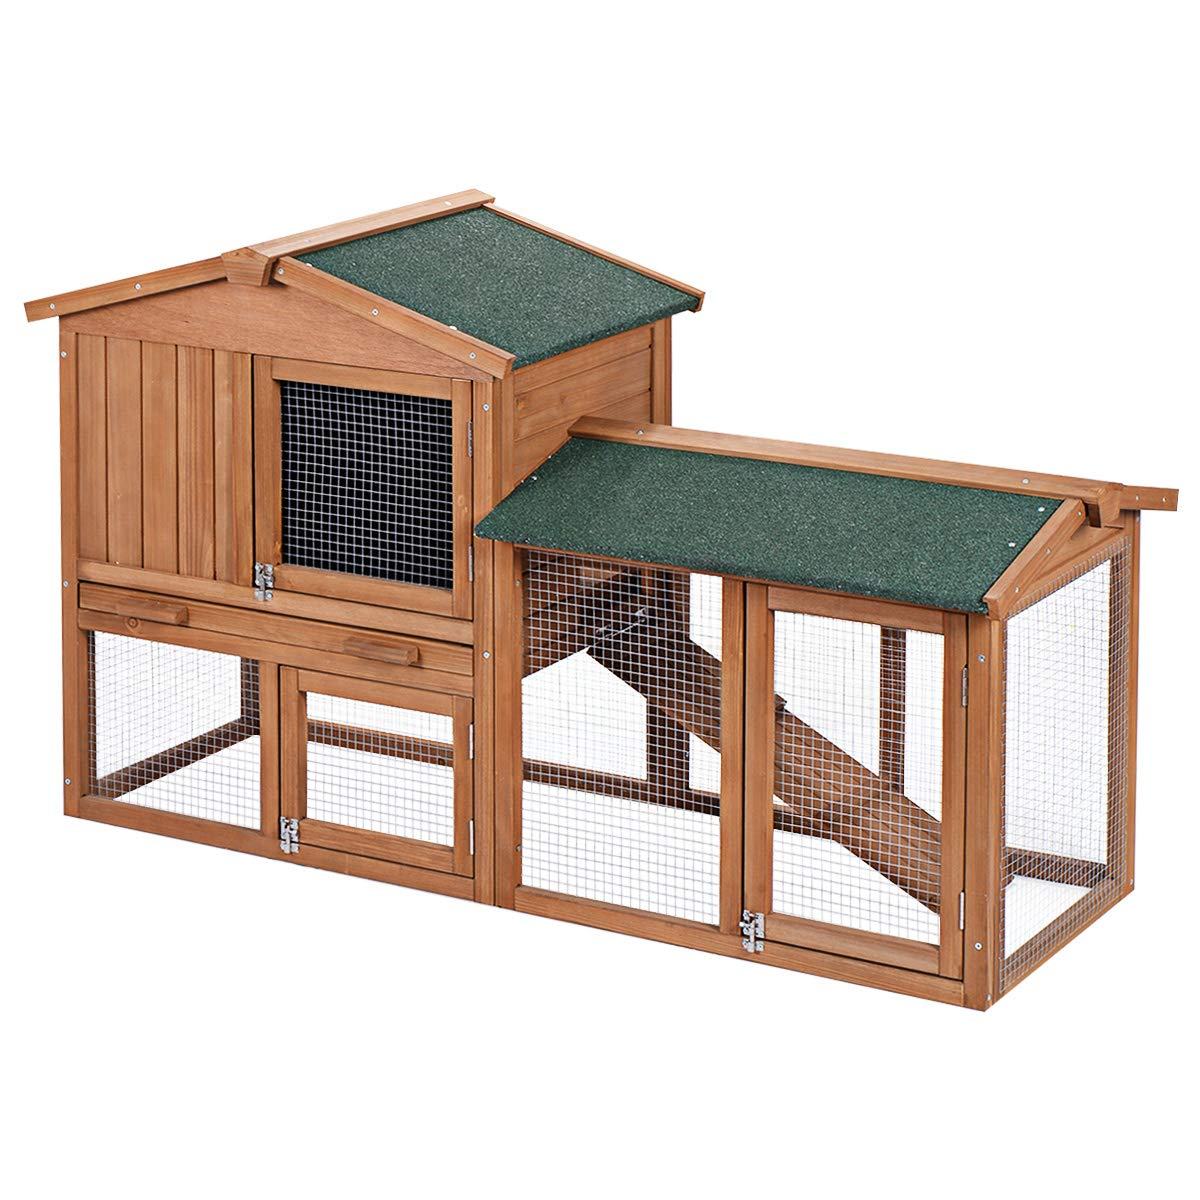 Tangkula 58'' Chicken Coop Large Wooden Outdoor Bunny Rabbit Hutch Hen Cage with Ventilation Door, Removable Tray & Ramp Garden Backyard Pet House Chicken Nesting Box